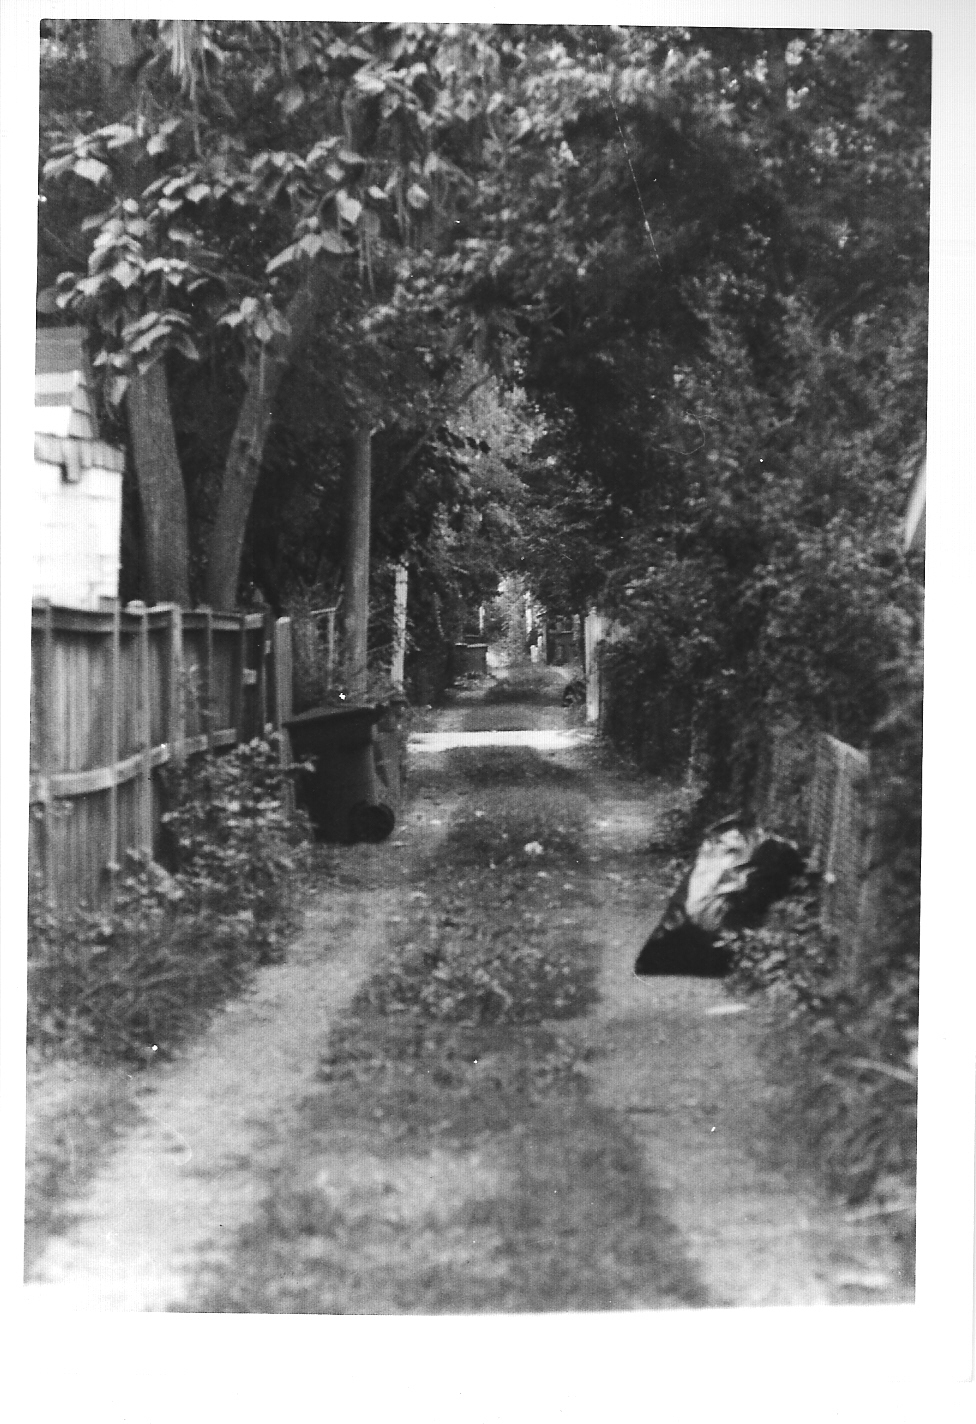 Alley - 2009